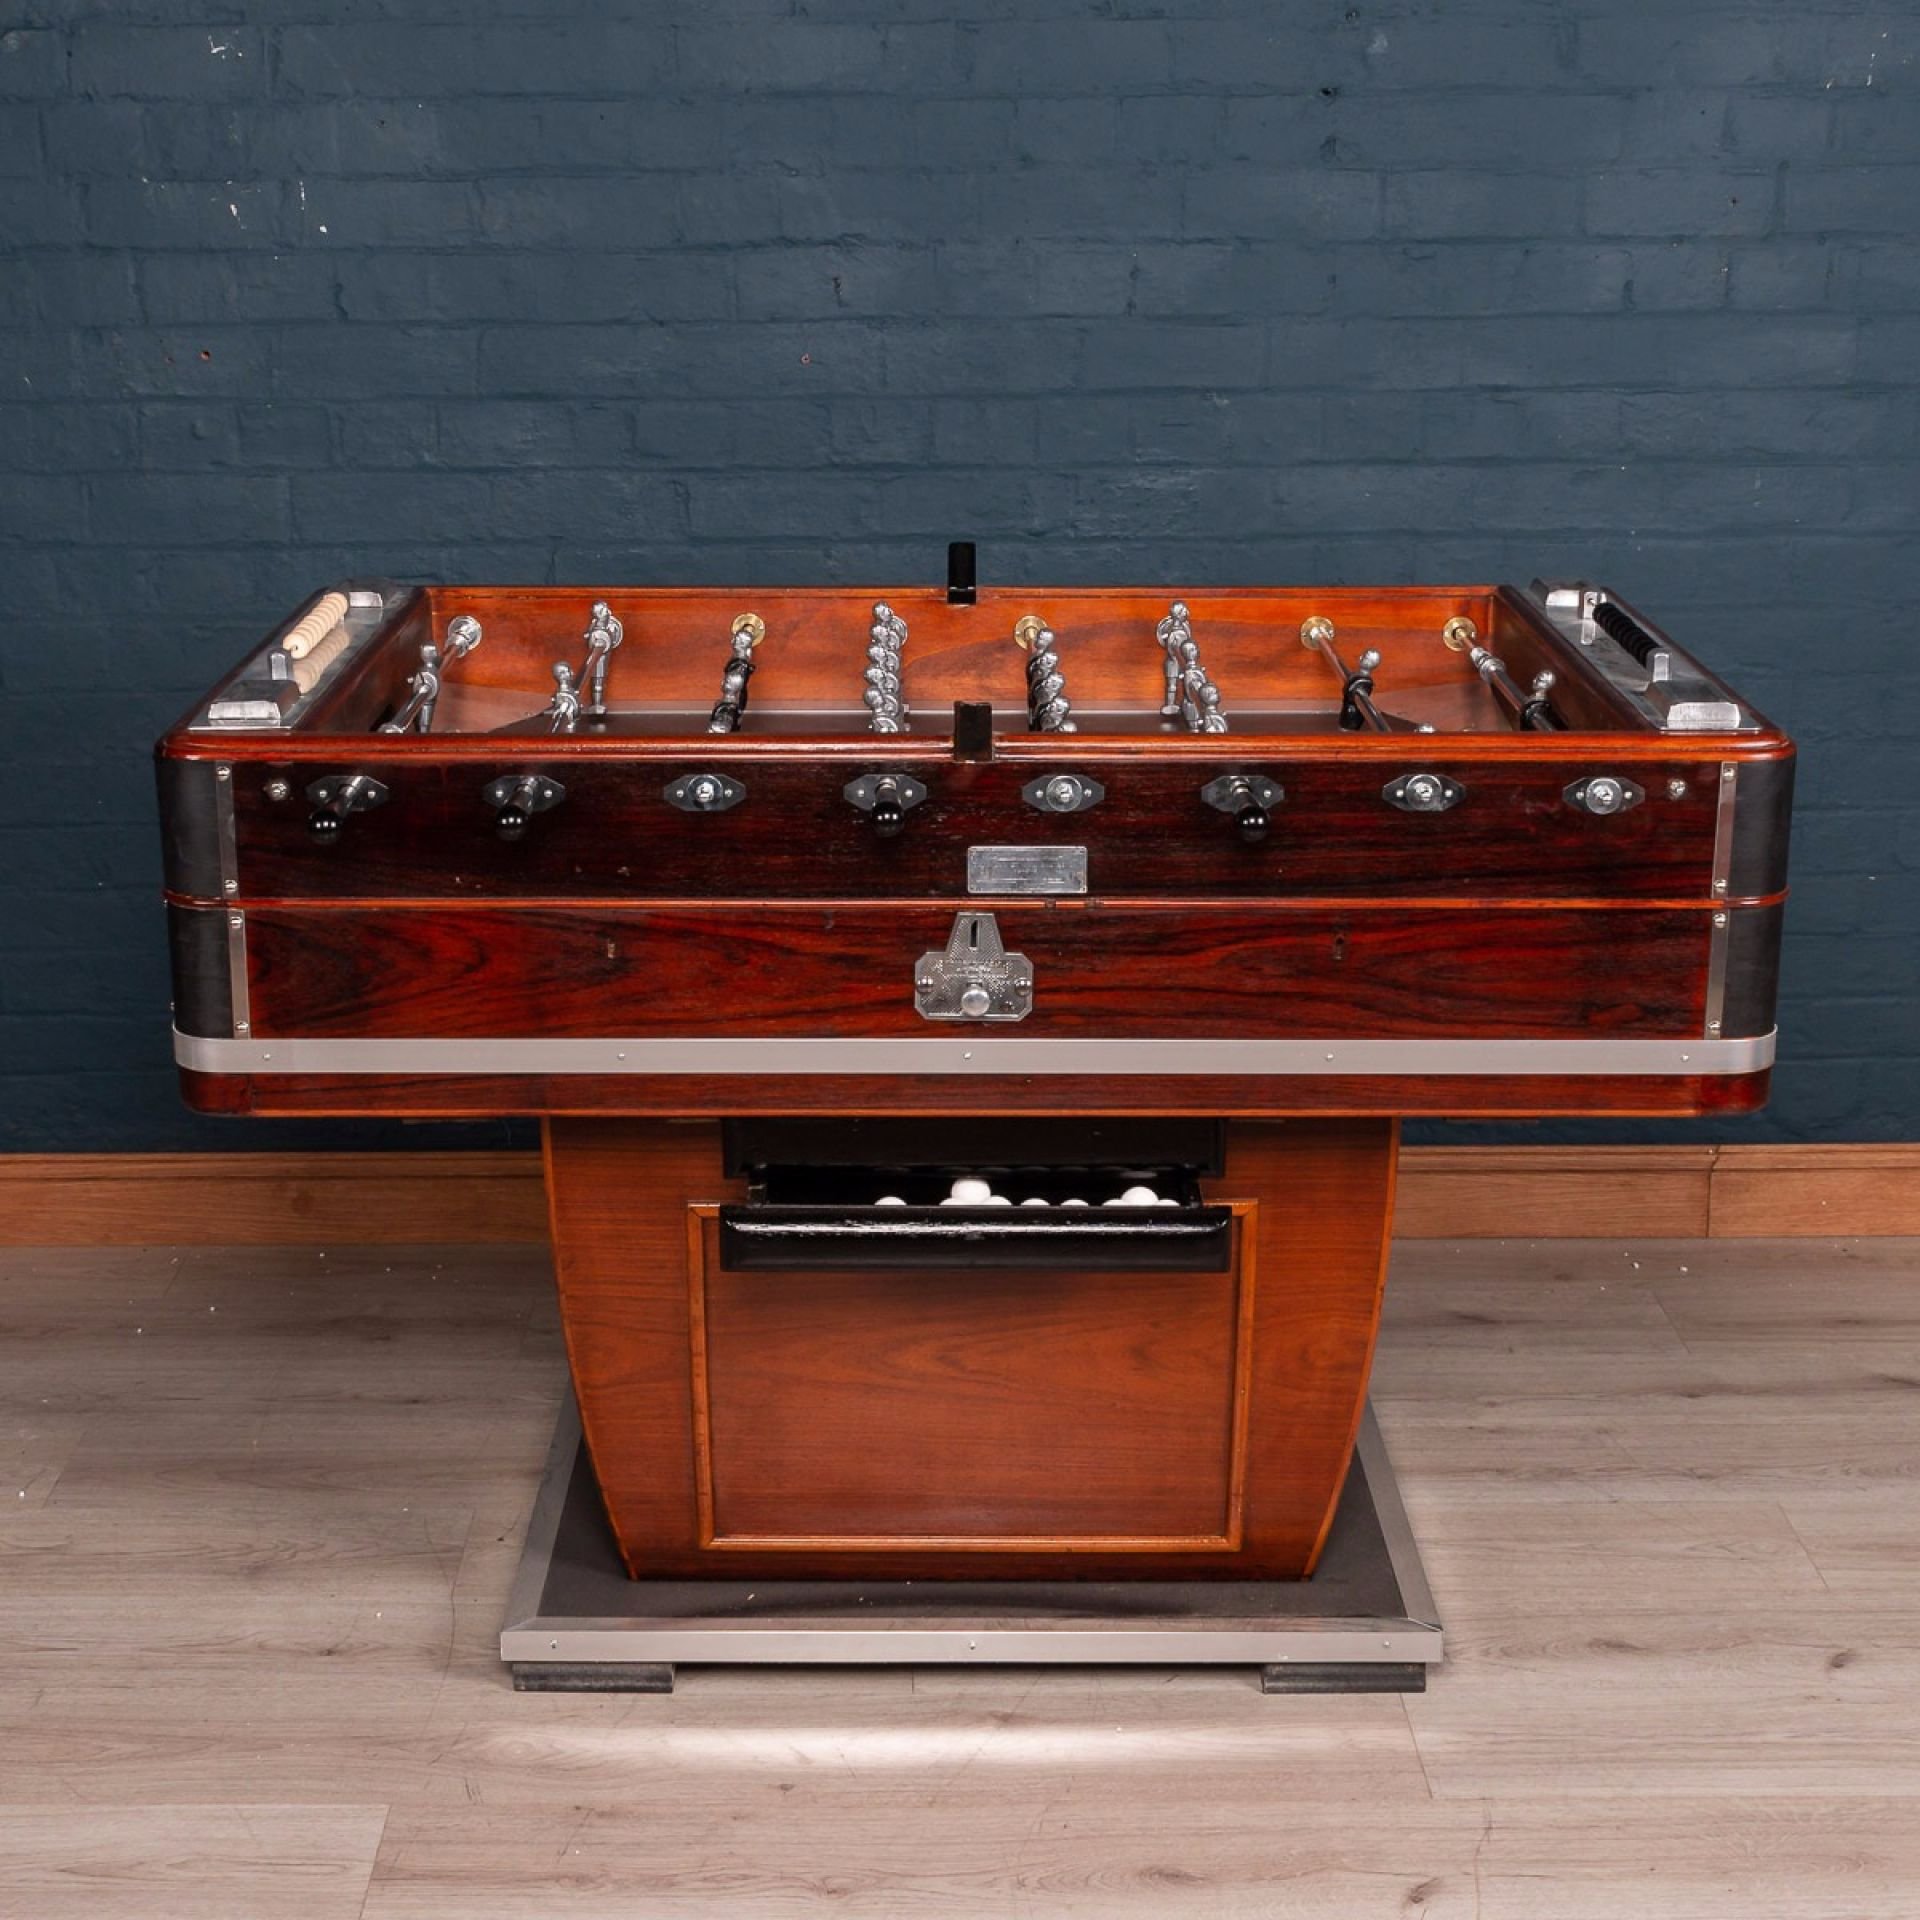 MID 20TH CENTURY FRENCH TABLE FOOTBALL GAME